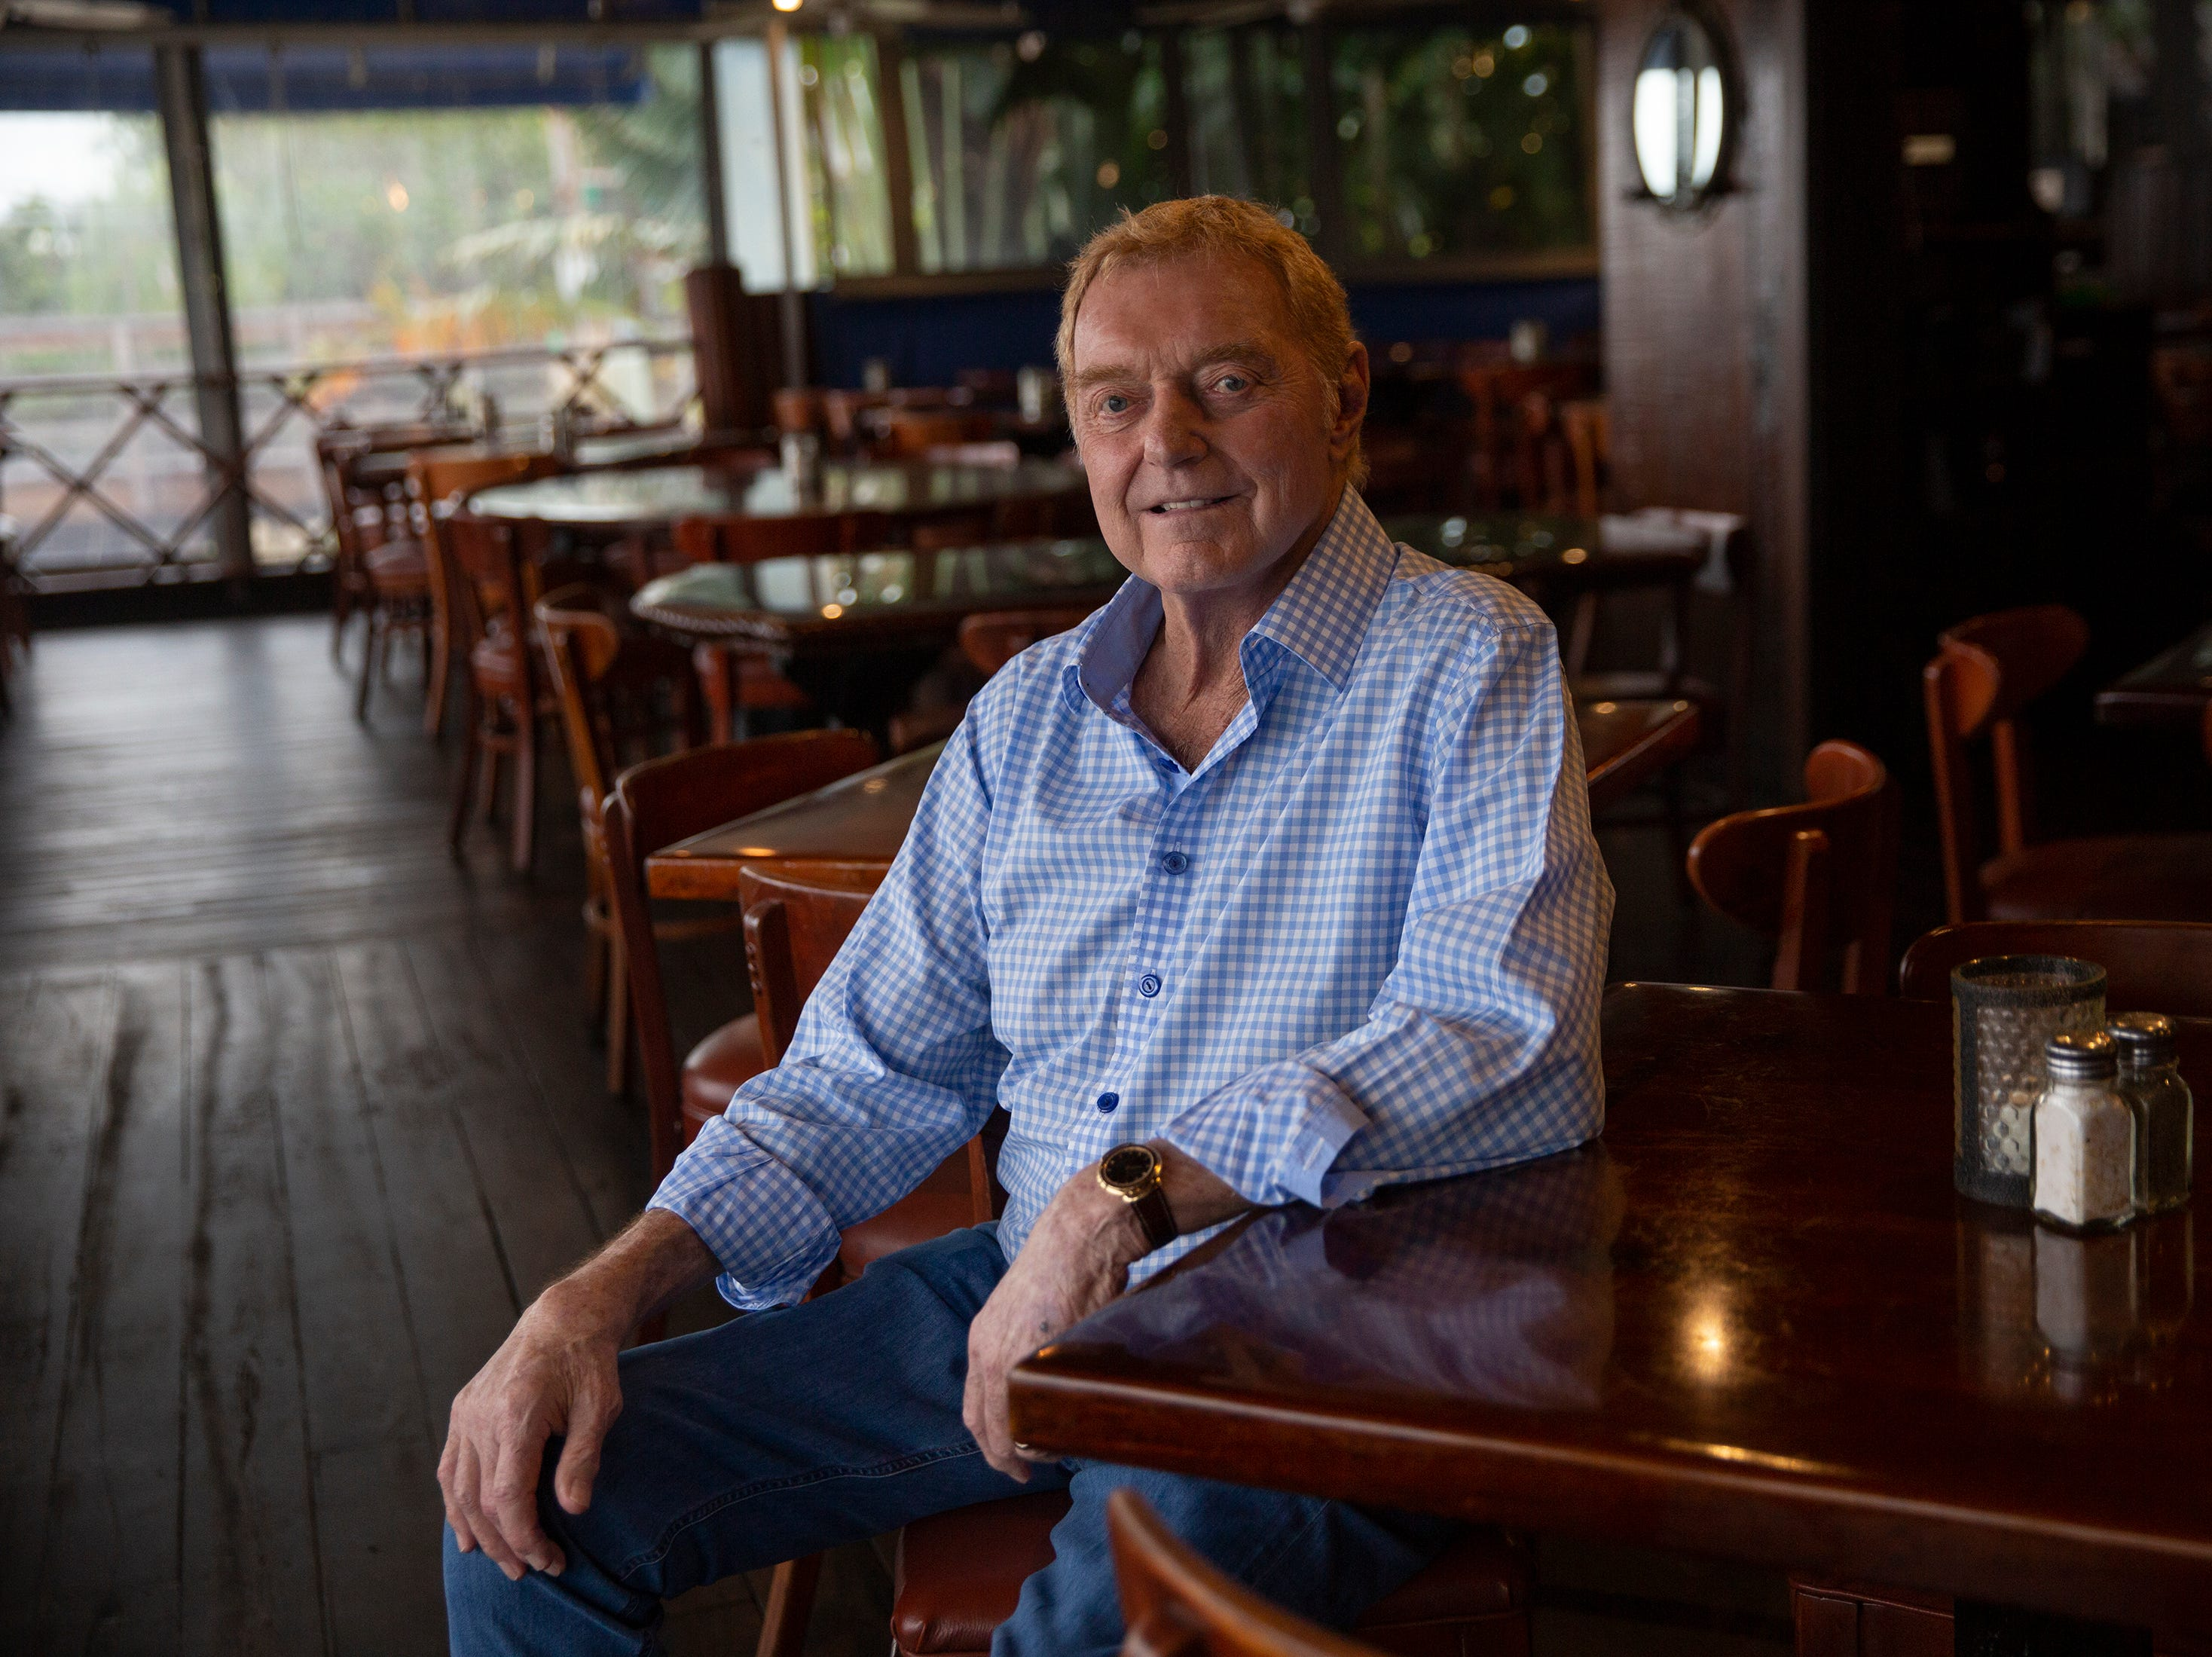 Vin Pasquale, former owner of The Dock restaurant sits for a portrait, Wednesday, Feb. 13, 2019, at The Dock restaurant in Naples.